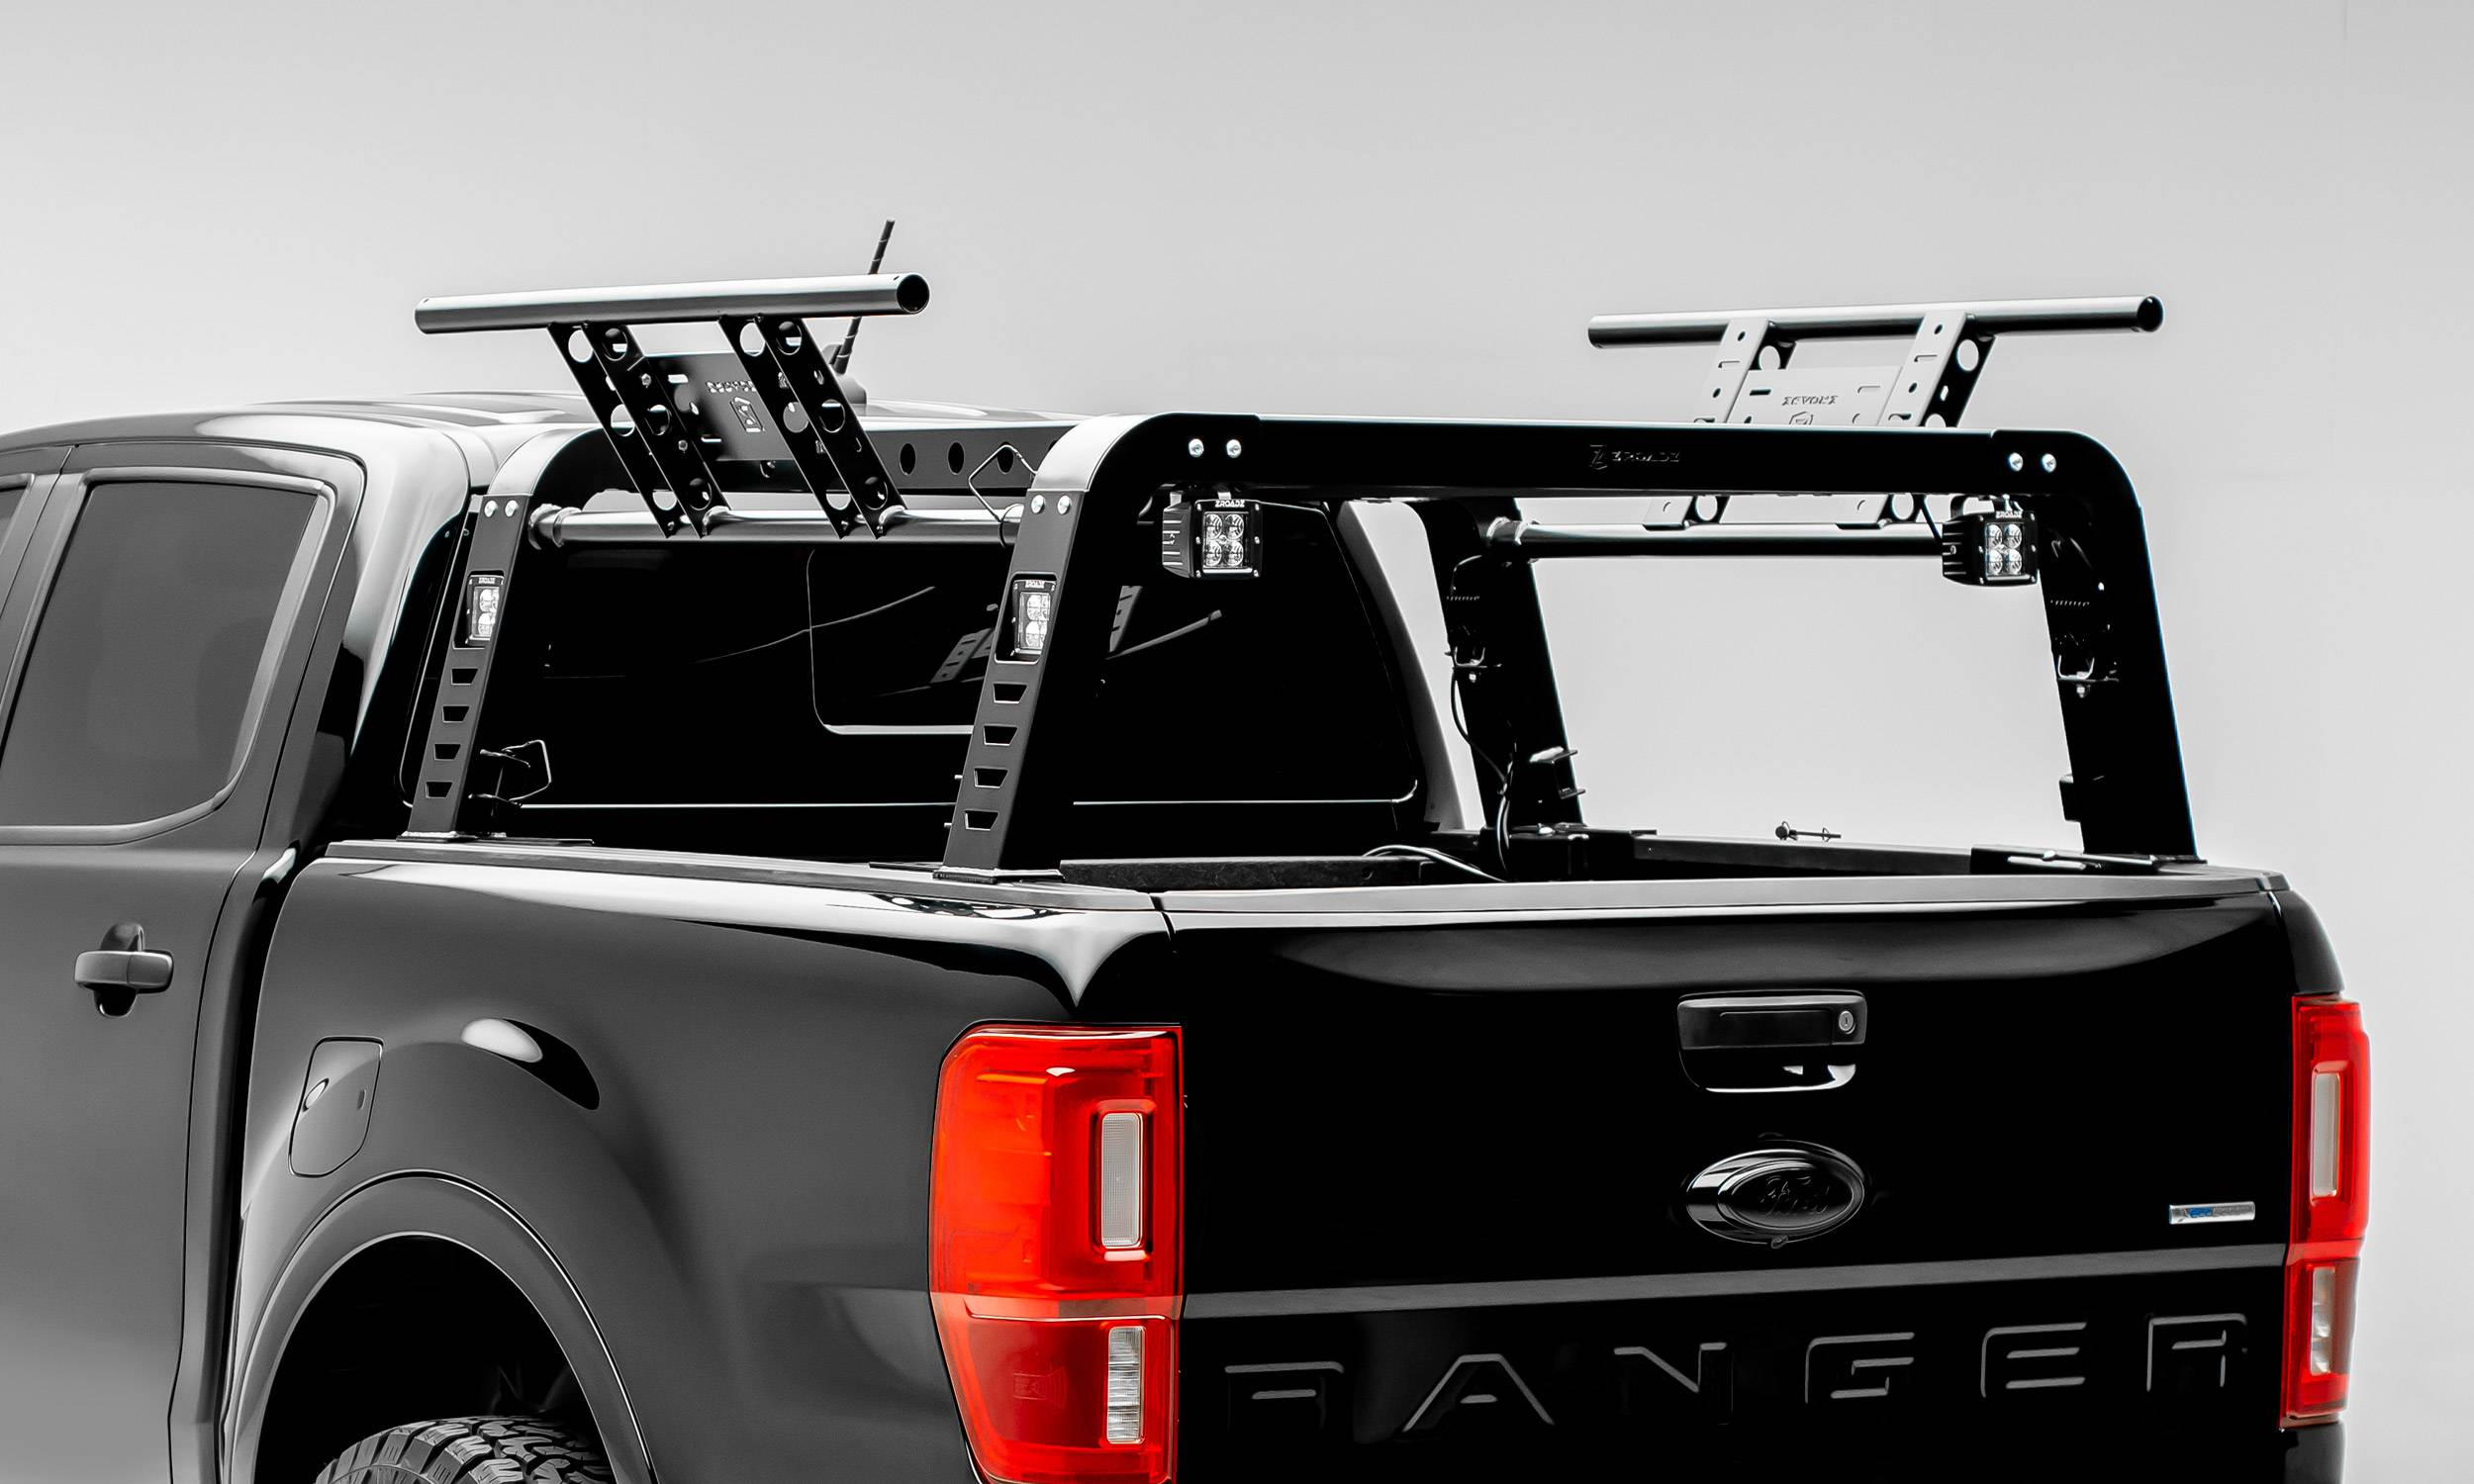 2019-2020 Ford Ranger Access Overland Rack With Side Gates Incl. (4) 3 Inch ZROADZ LED Pod Lights - PN #Z835101